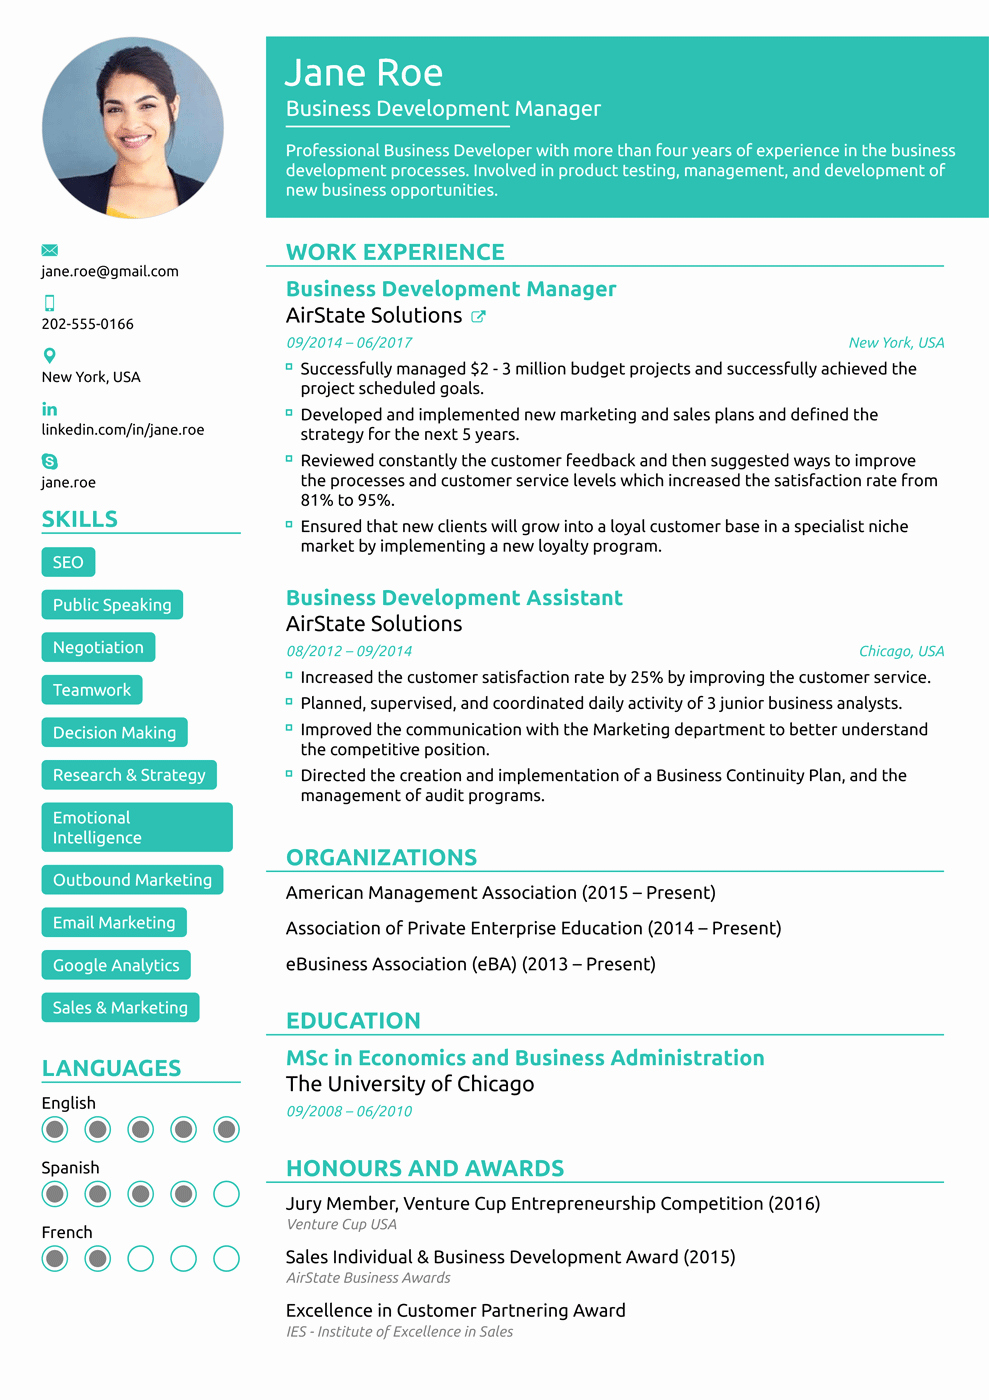 Functional Resume Templates Word Luxury 8 Best Line Resume Templates Of 2018 [download & Customize]